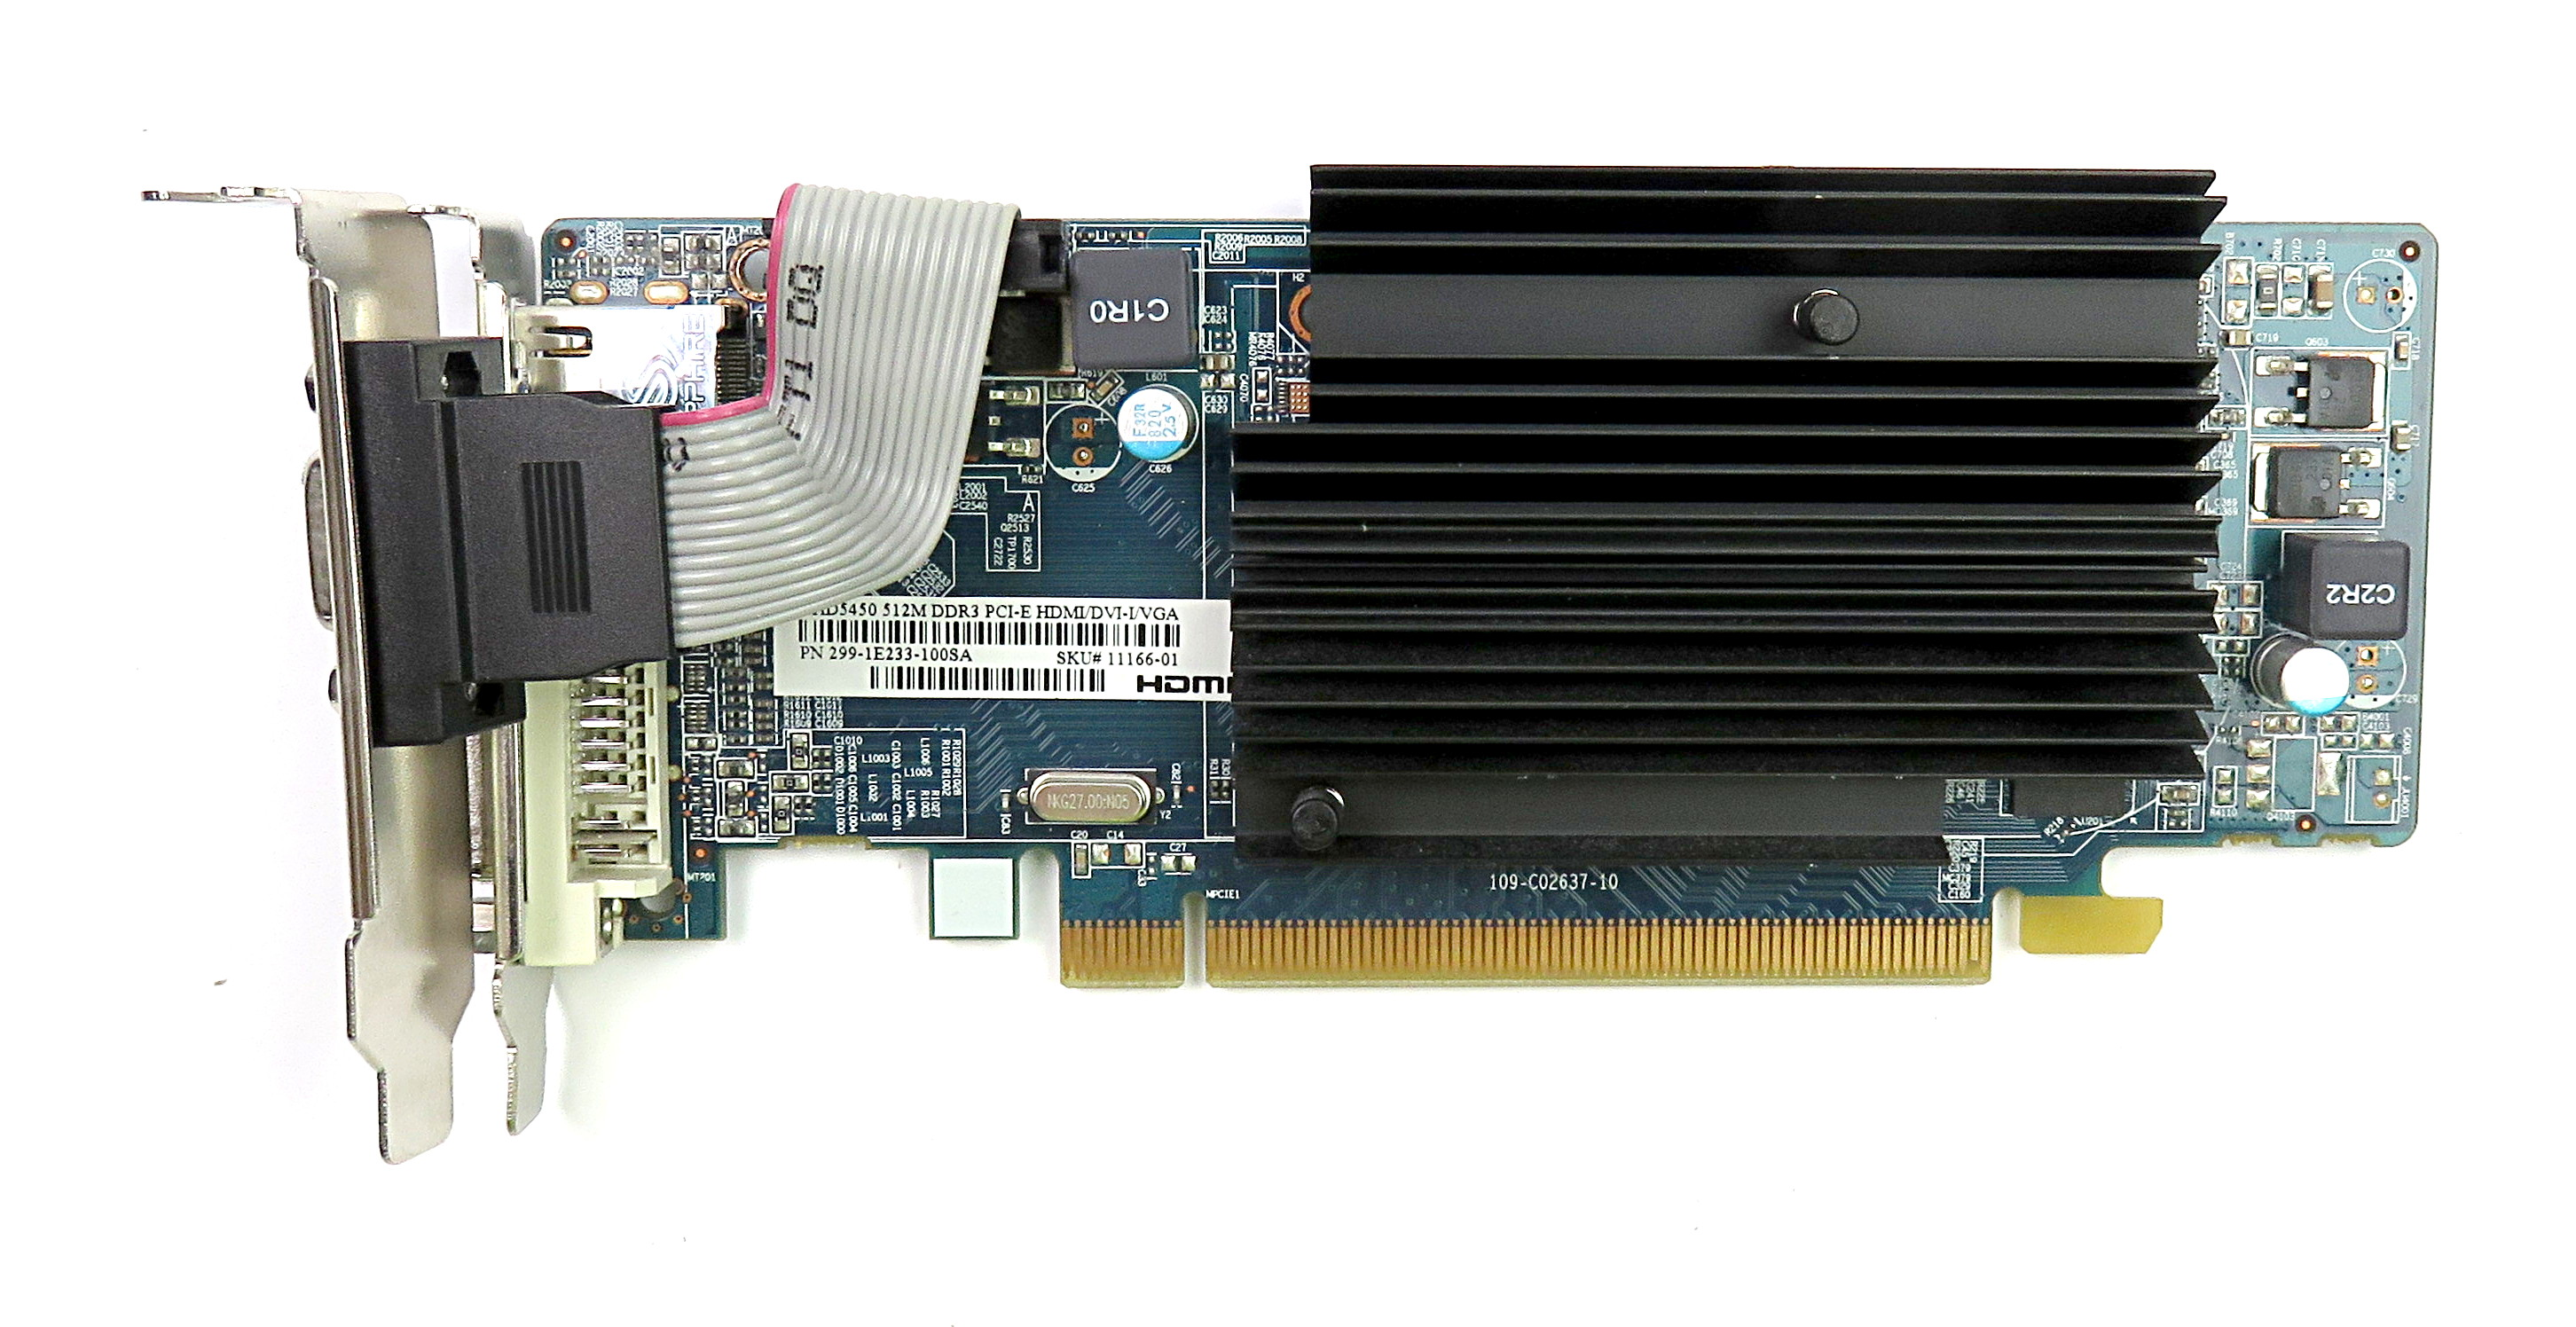 Sapphire 299-1E233-100SA Radeon HD5450 512MB LP Graphics Card HDMI/DVI/VGA